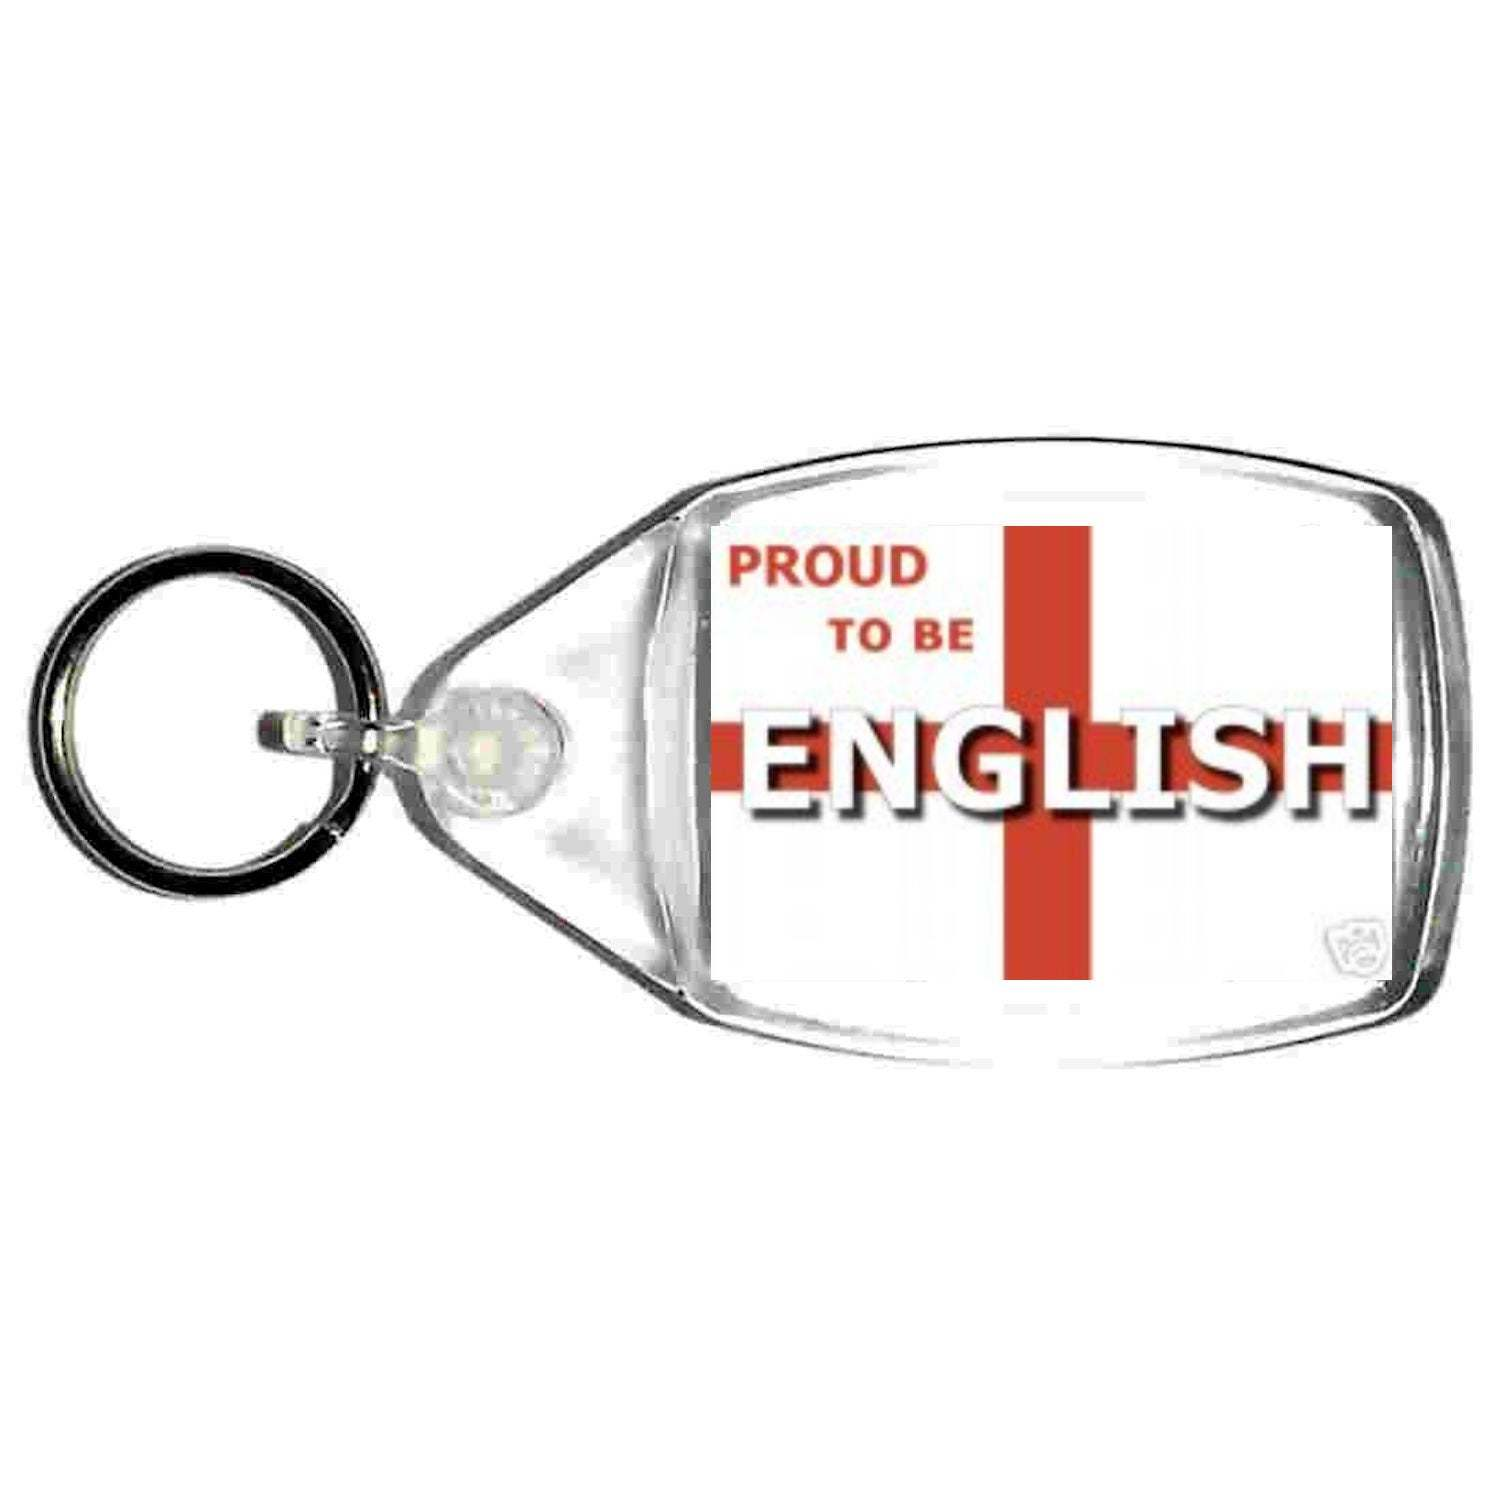 proud to be english flag of england  keyring  handmade in uk from uk made parts,